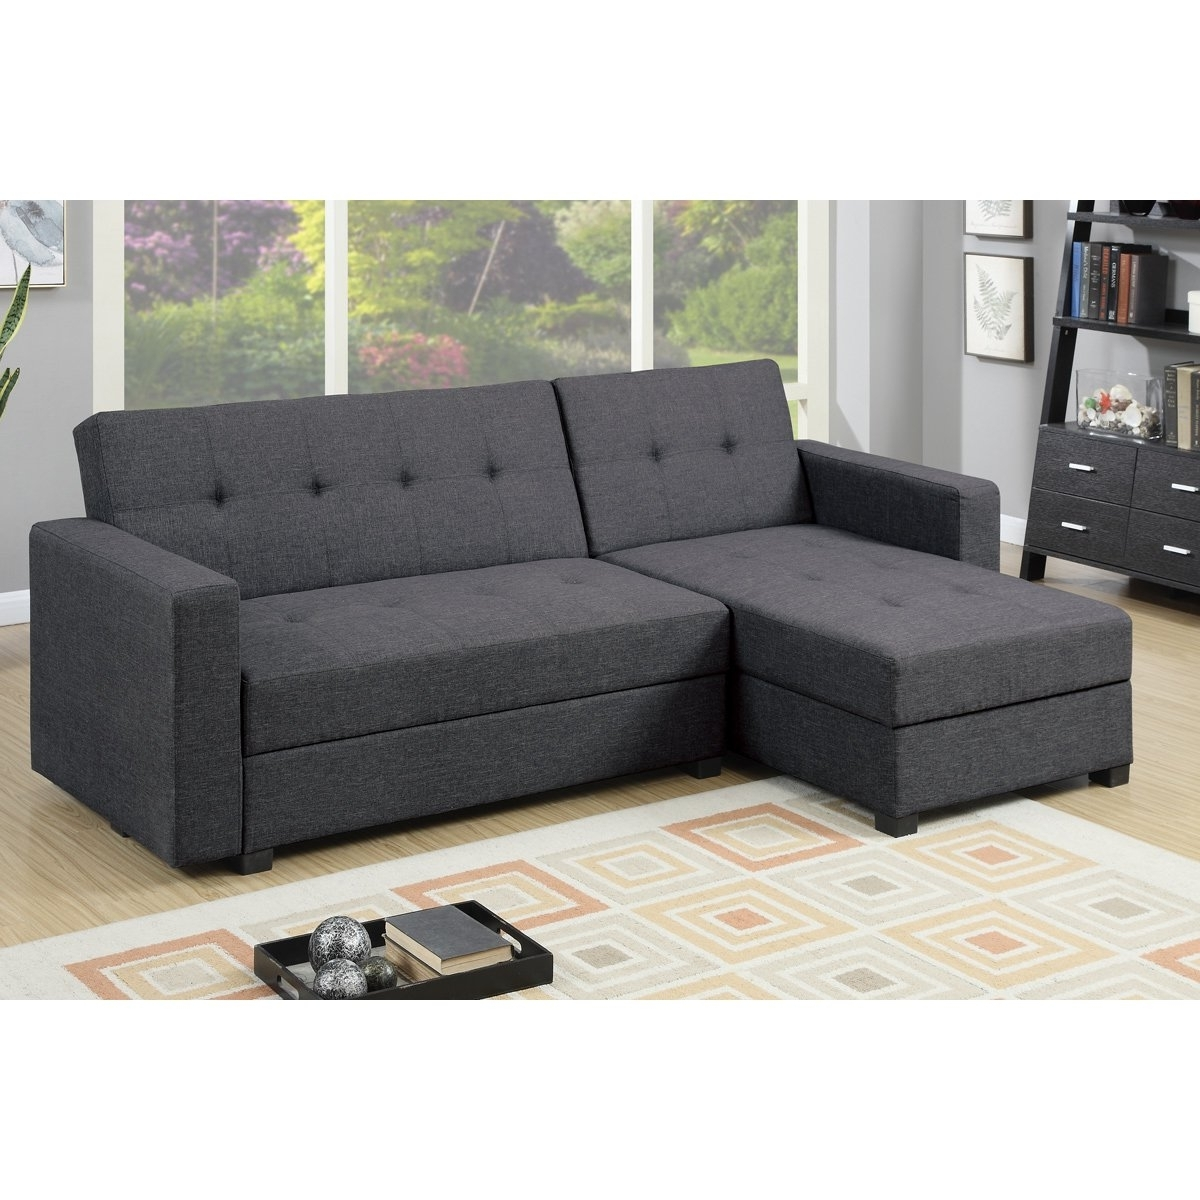 Trendy Sofas With Reversible Chaise Lounge Throughout Furniture: Reversible Chaise Sectional For Comfortable Living Room (View 12 of 15)